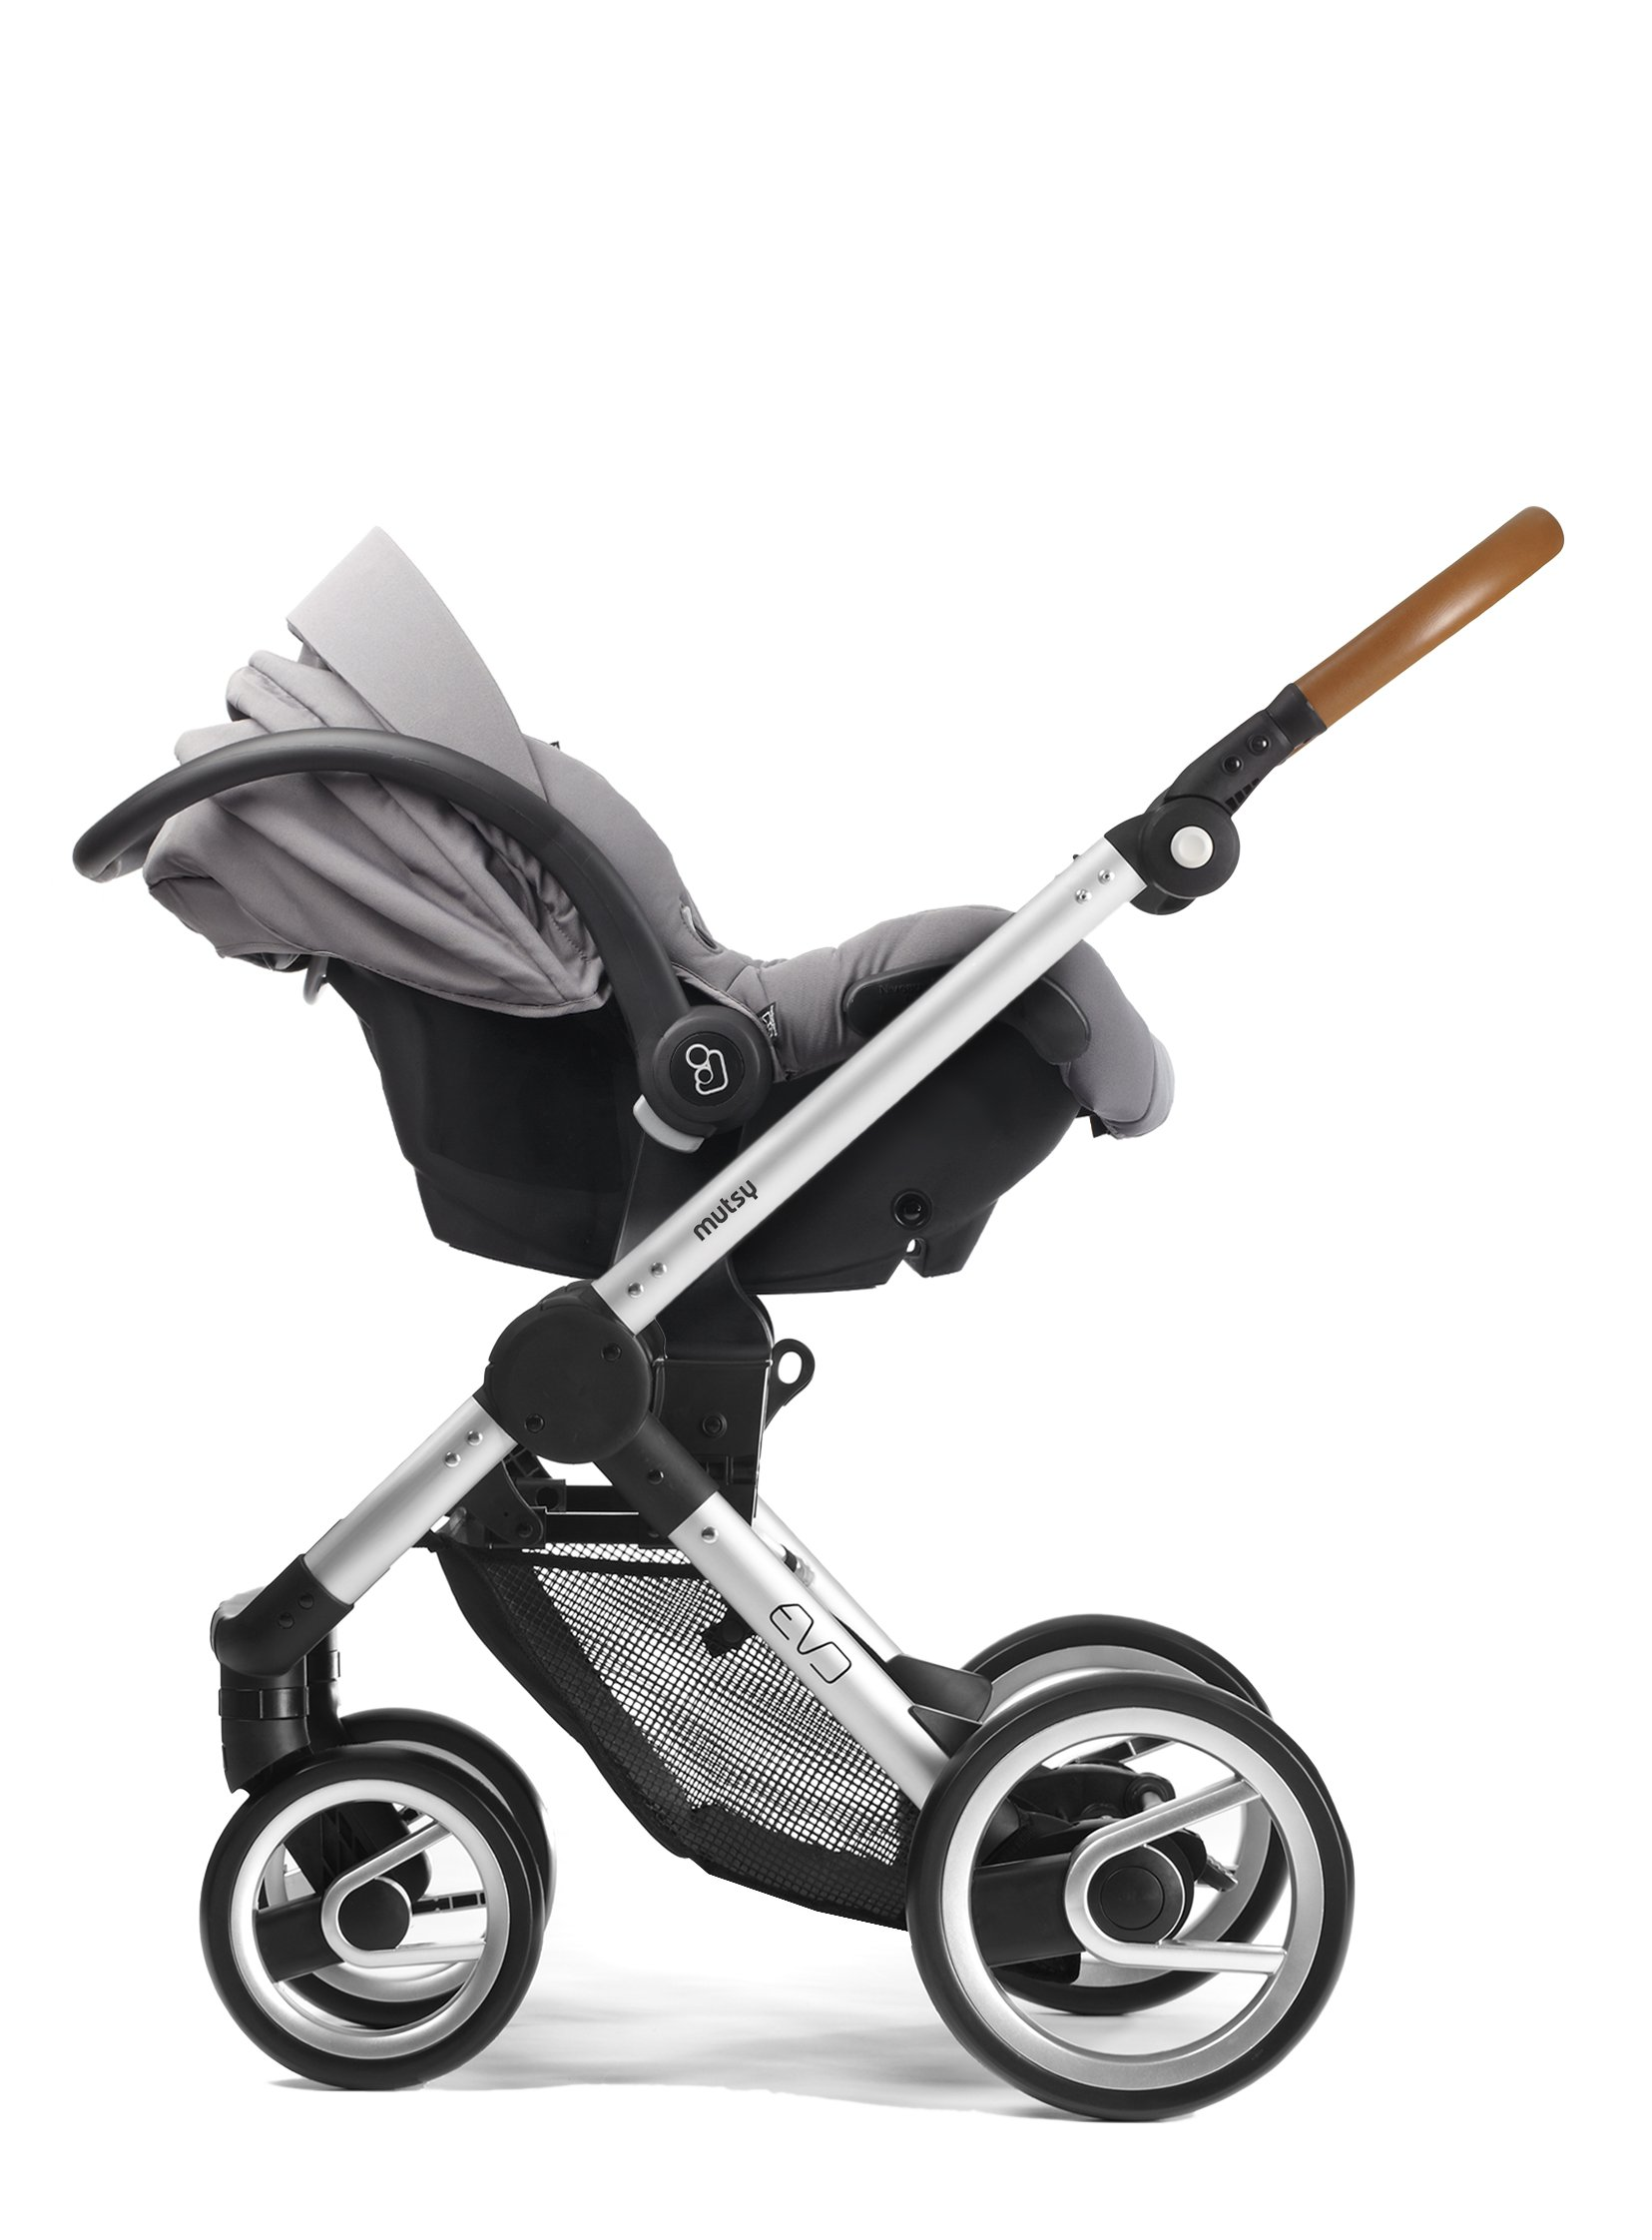 Mutsy Evo Industrial Edition Stroller, Grey with Silver Chassis by Mutsy (Image #6)